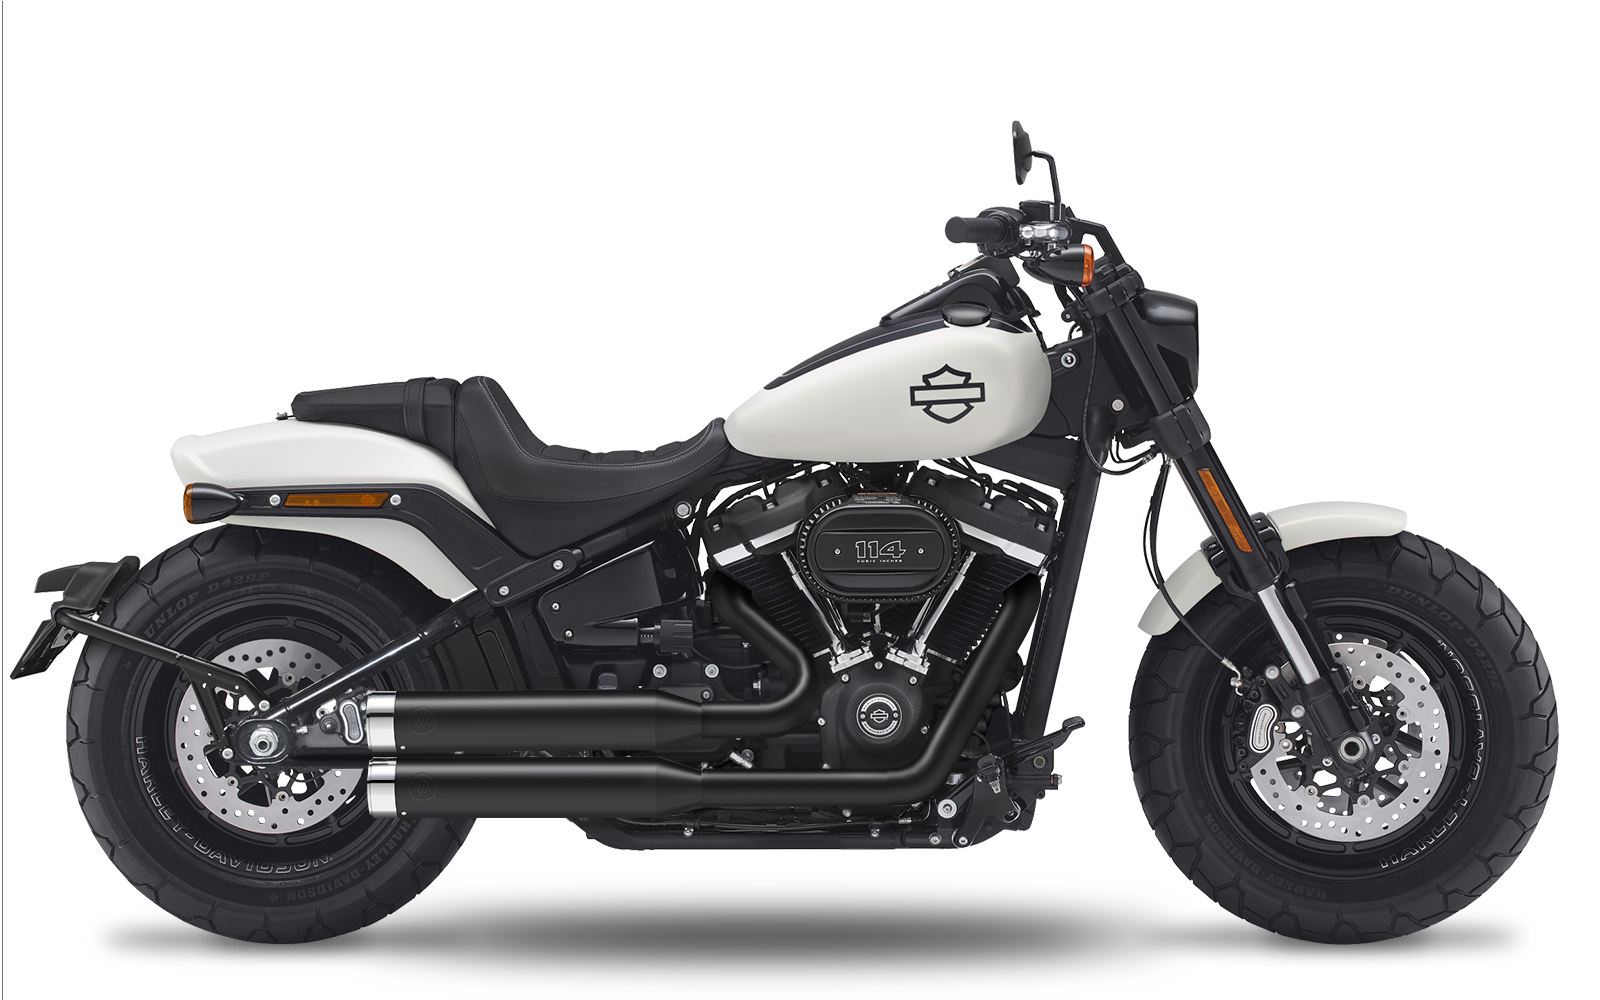 Softail - Fat Bob - ME107 - 2018-2020 - Complete systems